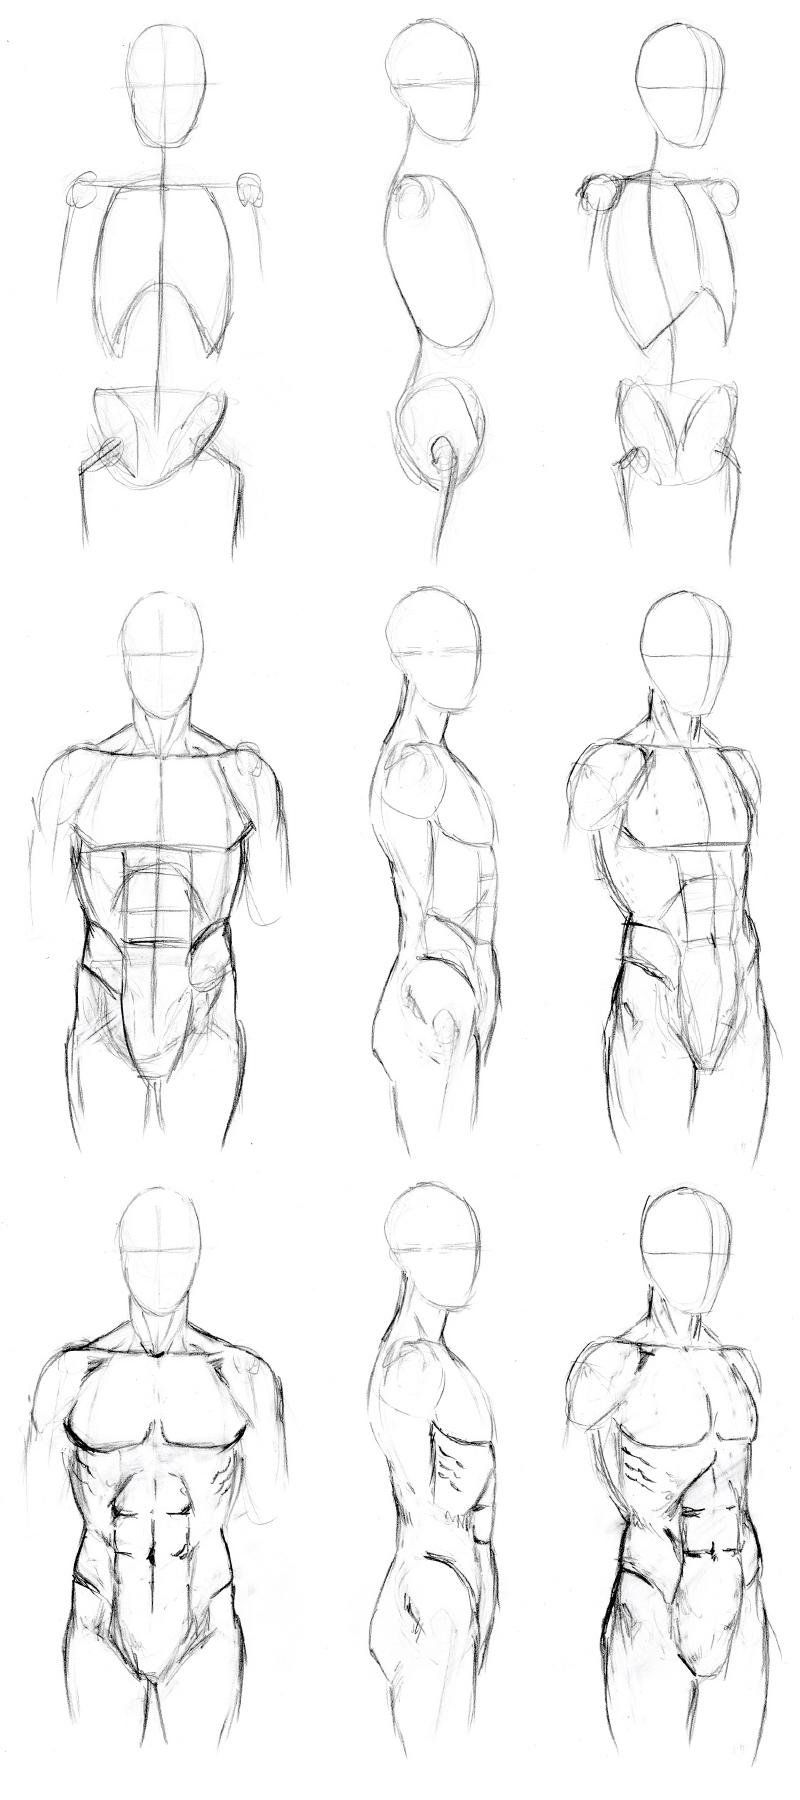 Step 1: Skeleton Sketch your basic structure outline. For t he torso we will